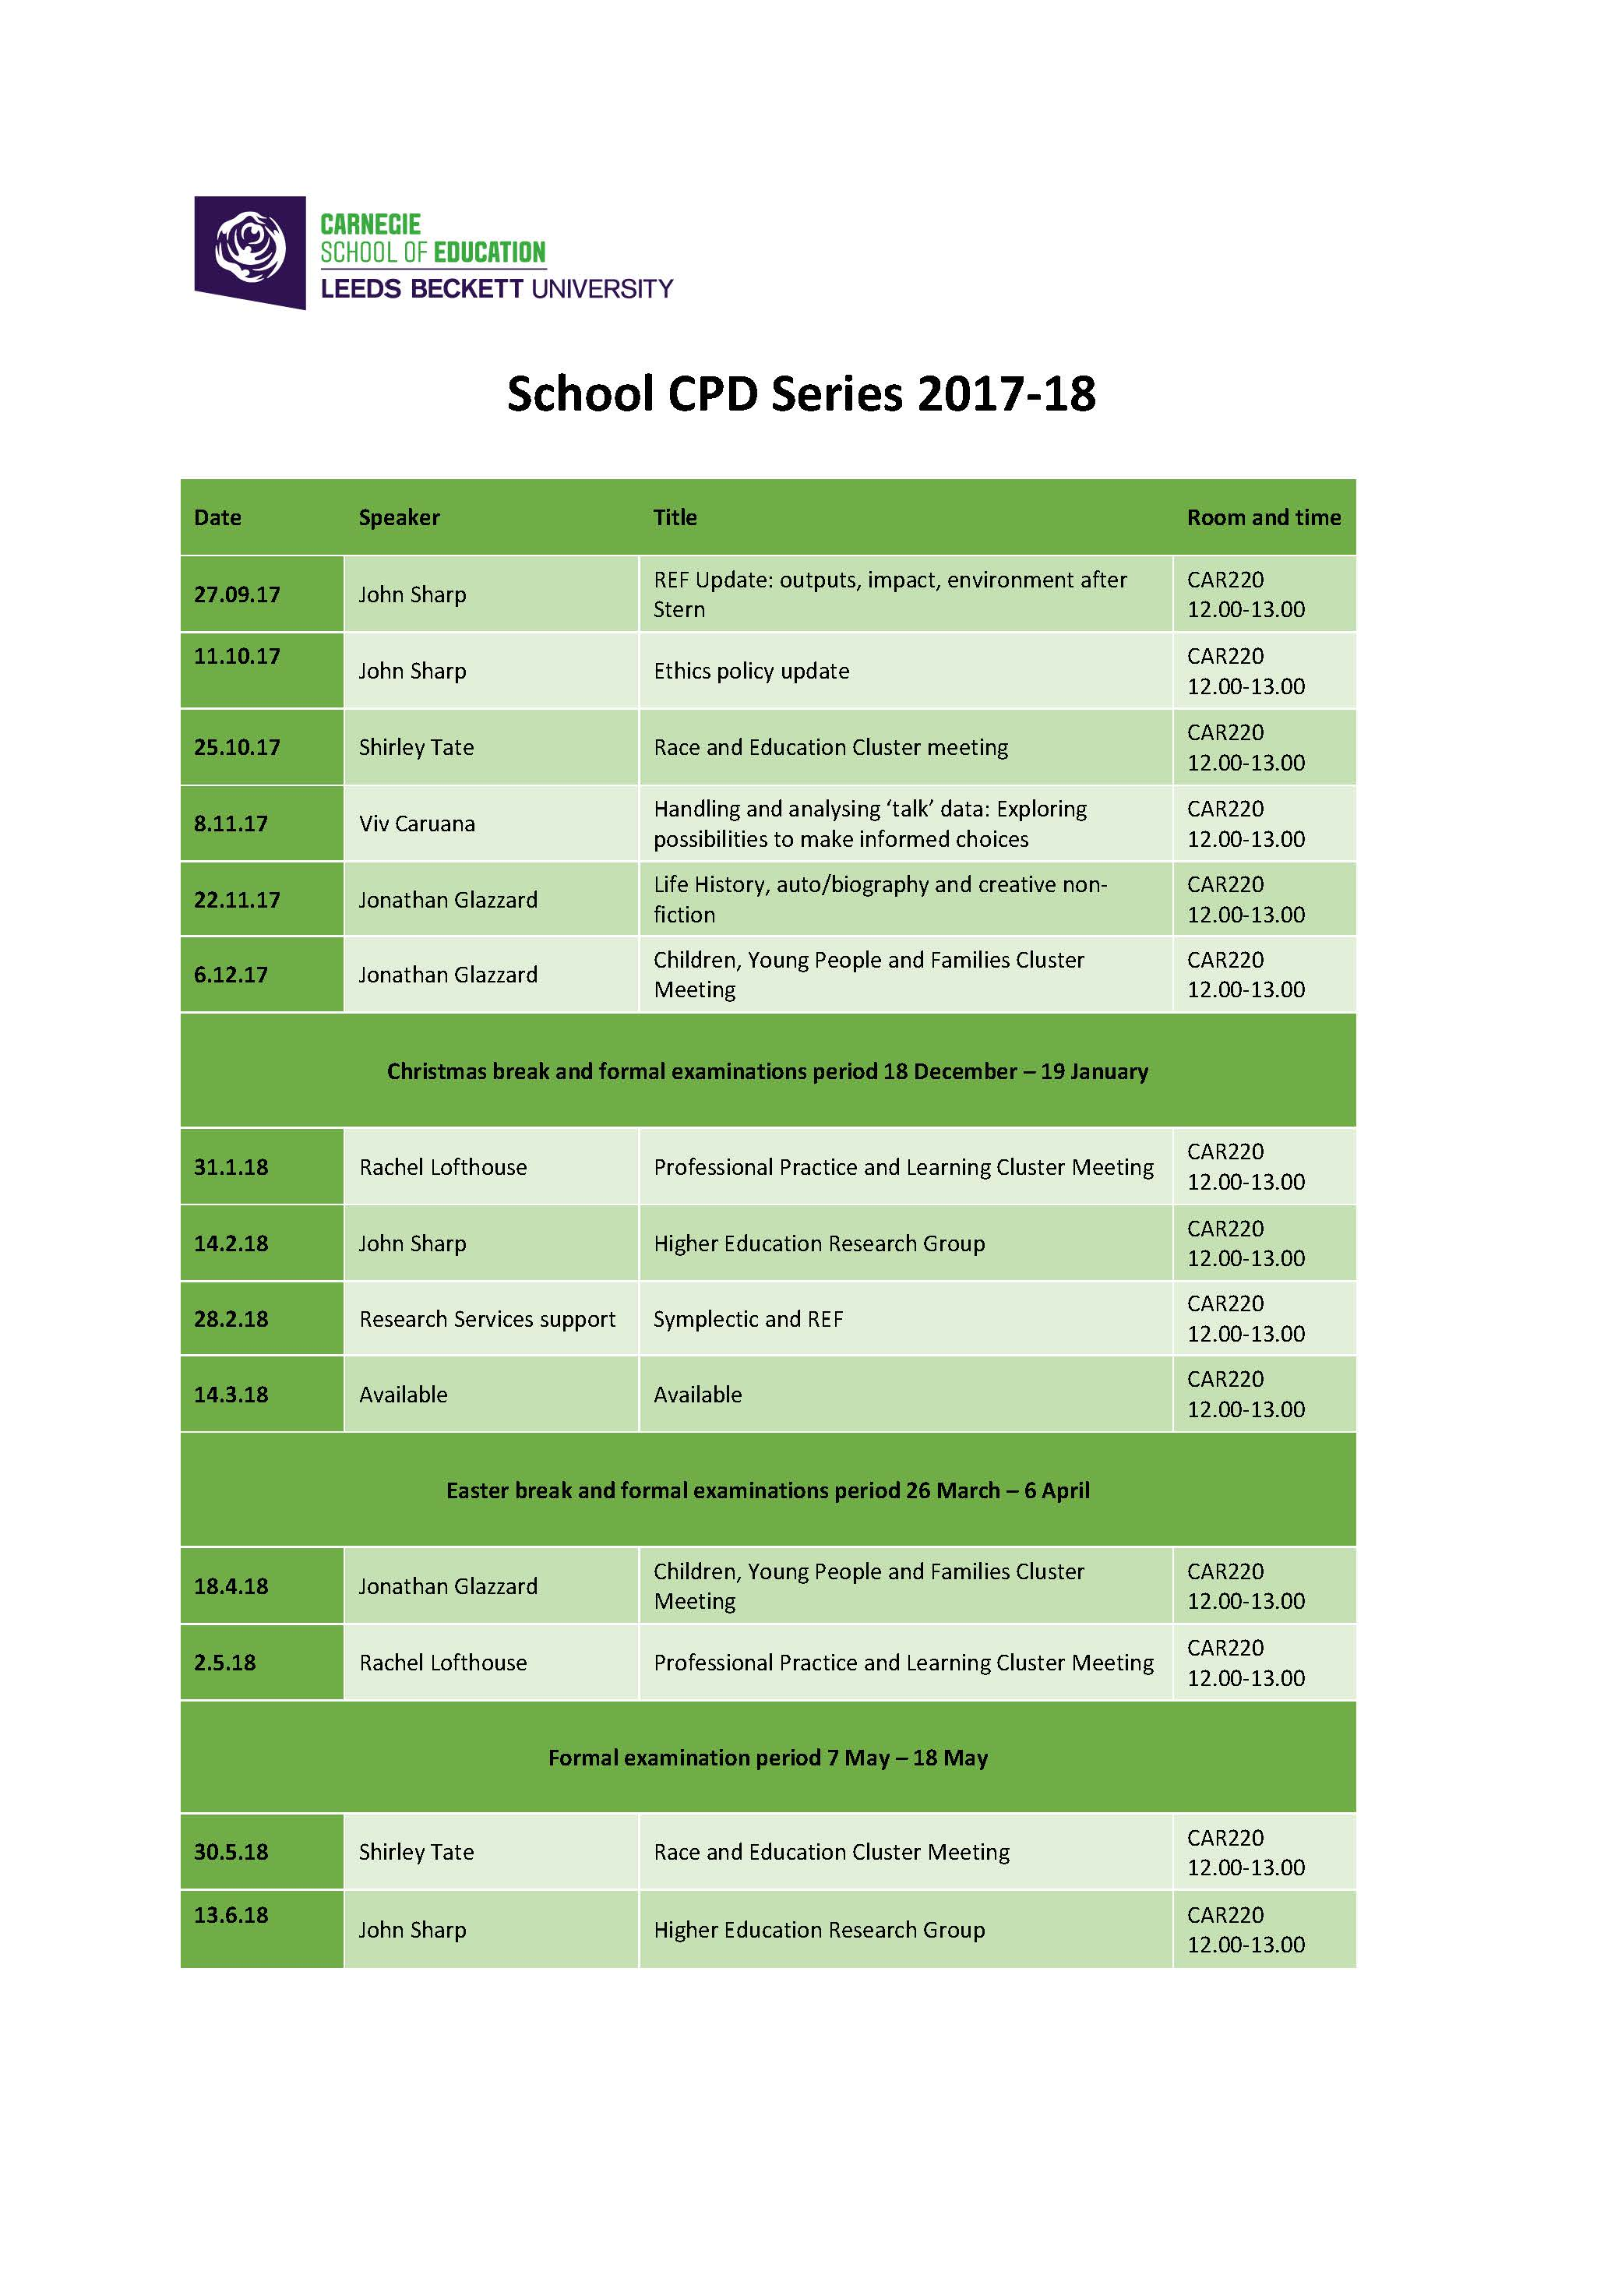 School CPD Series Timetable